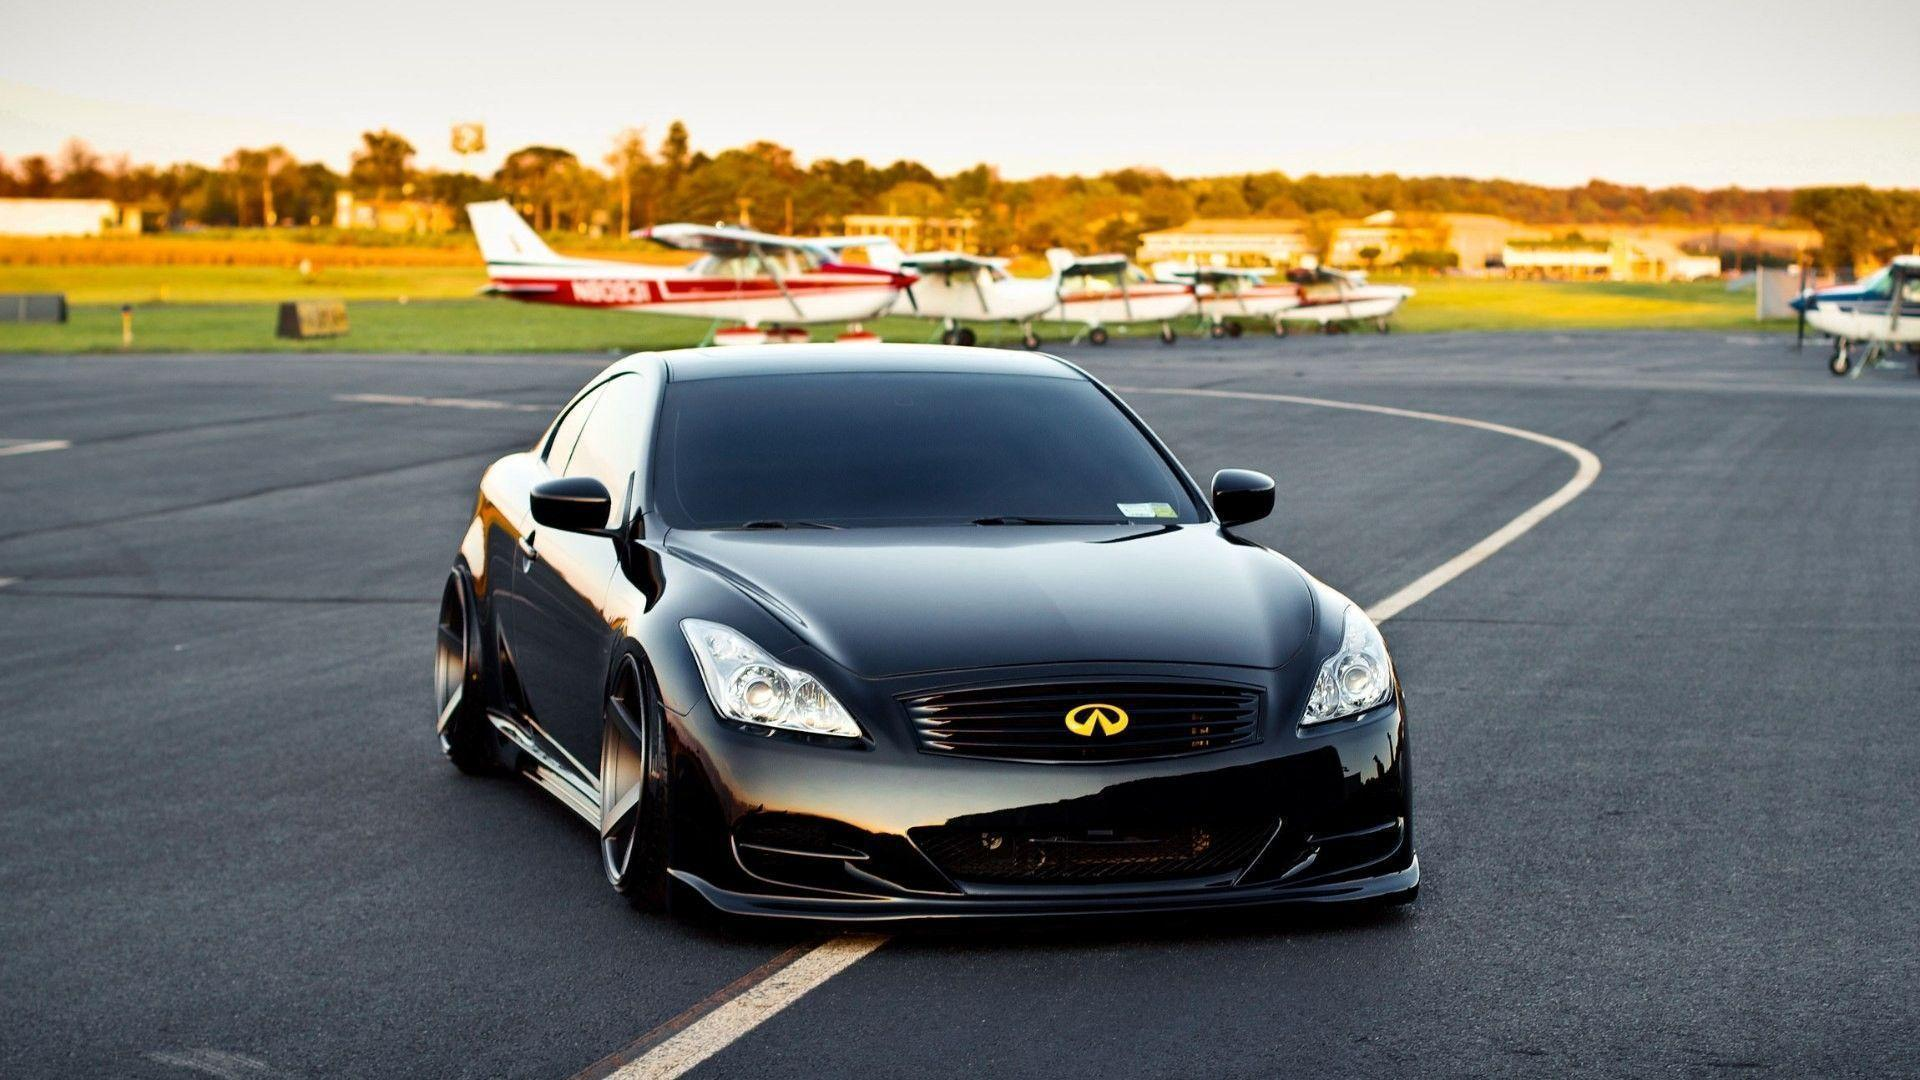 Black Infiniti G35 Coupe Wallpapers